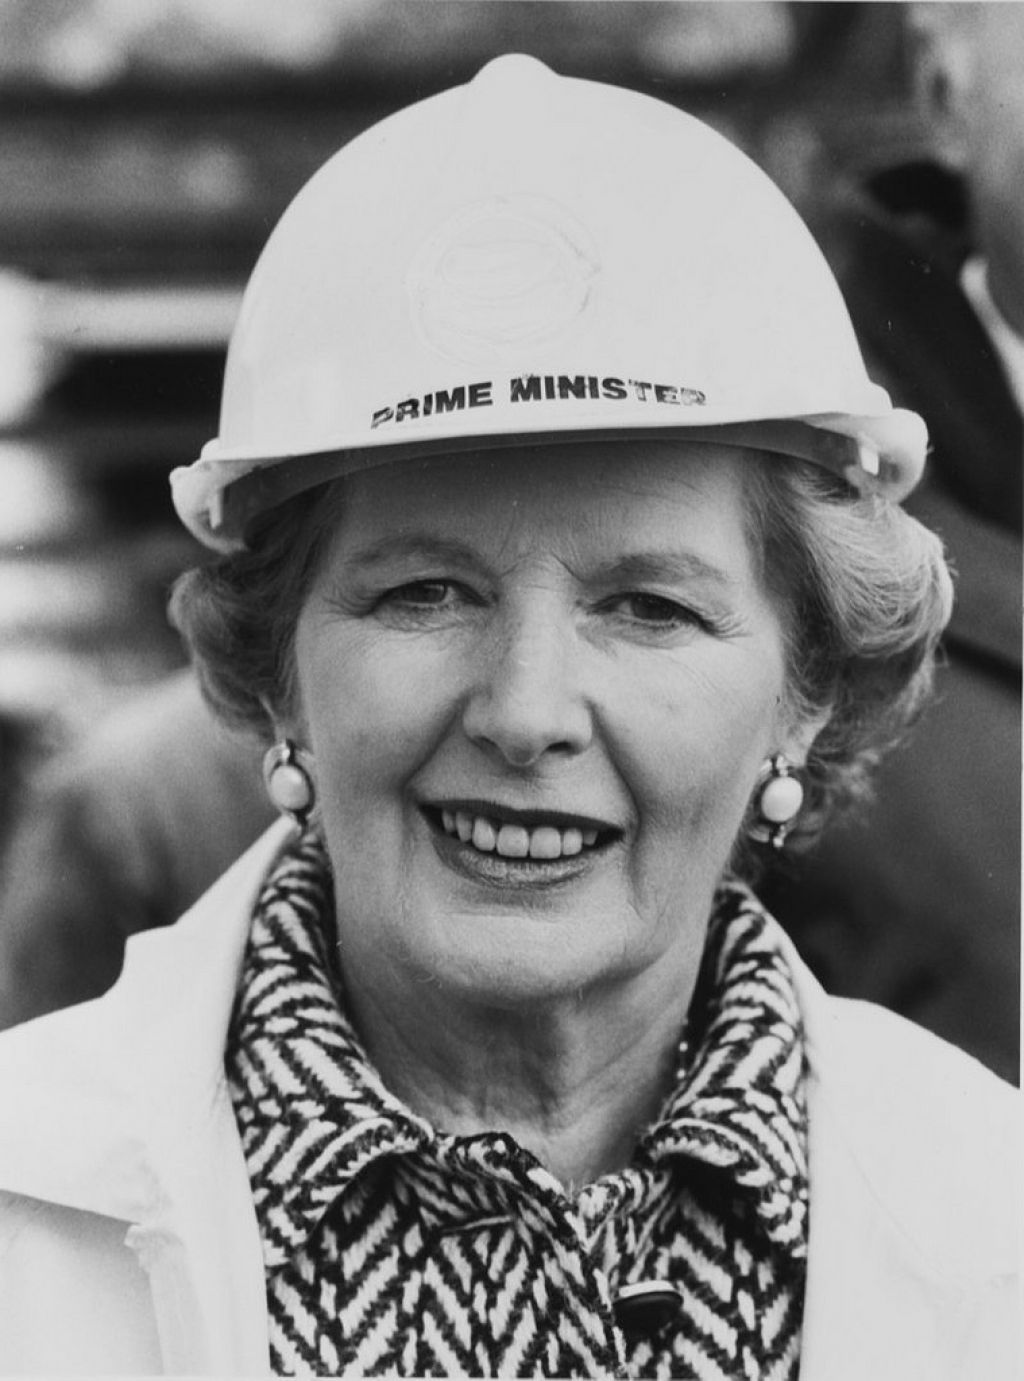 margaret thatcher The Iron Lady, Margaret Thatcher Has Died at 87